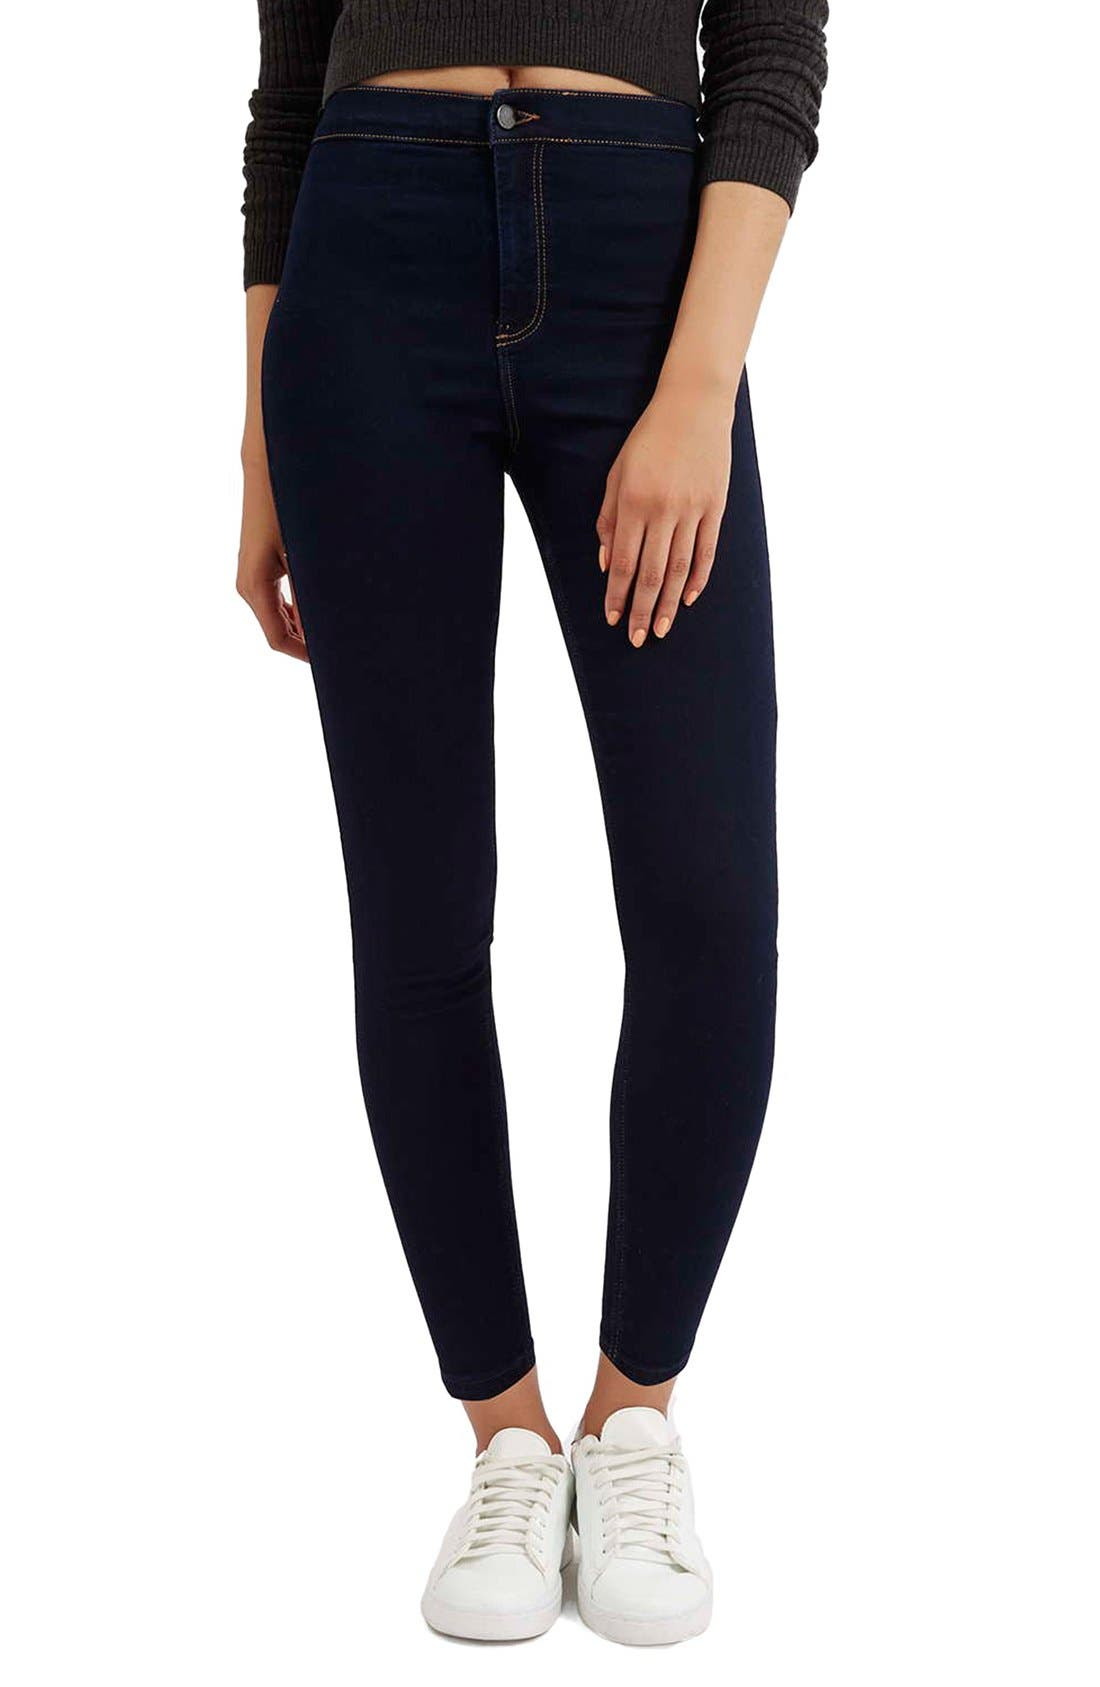 Alternate Image 1 Selected - Topshop Moto 'Joni' High Rise Skinny Jeans (Petite)